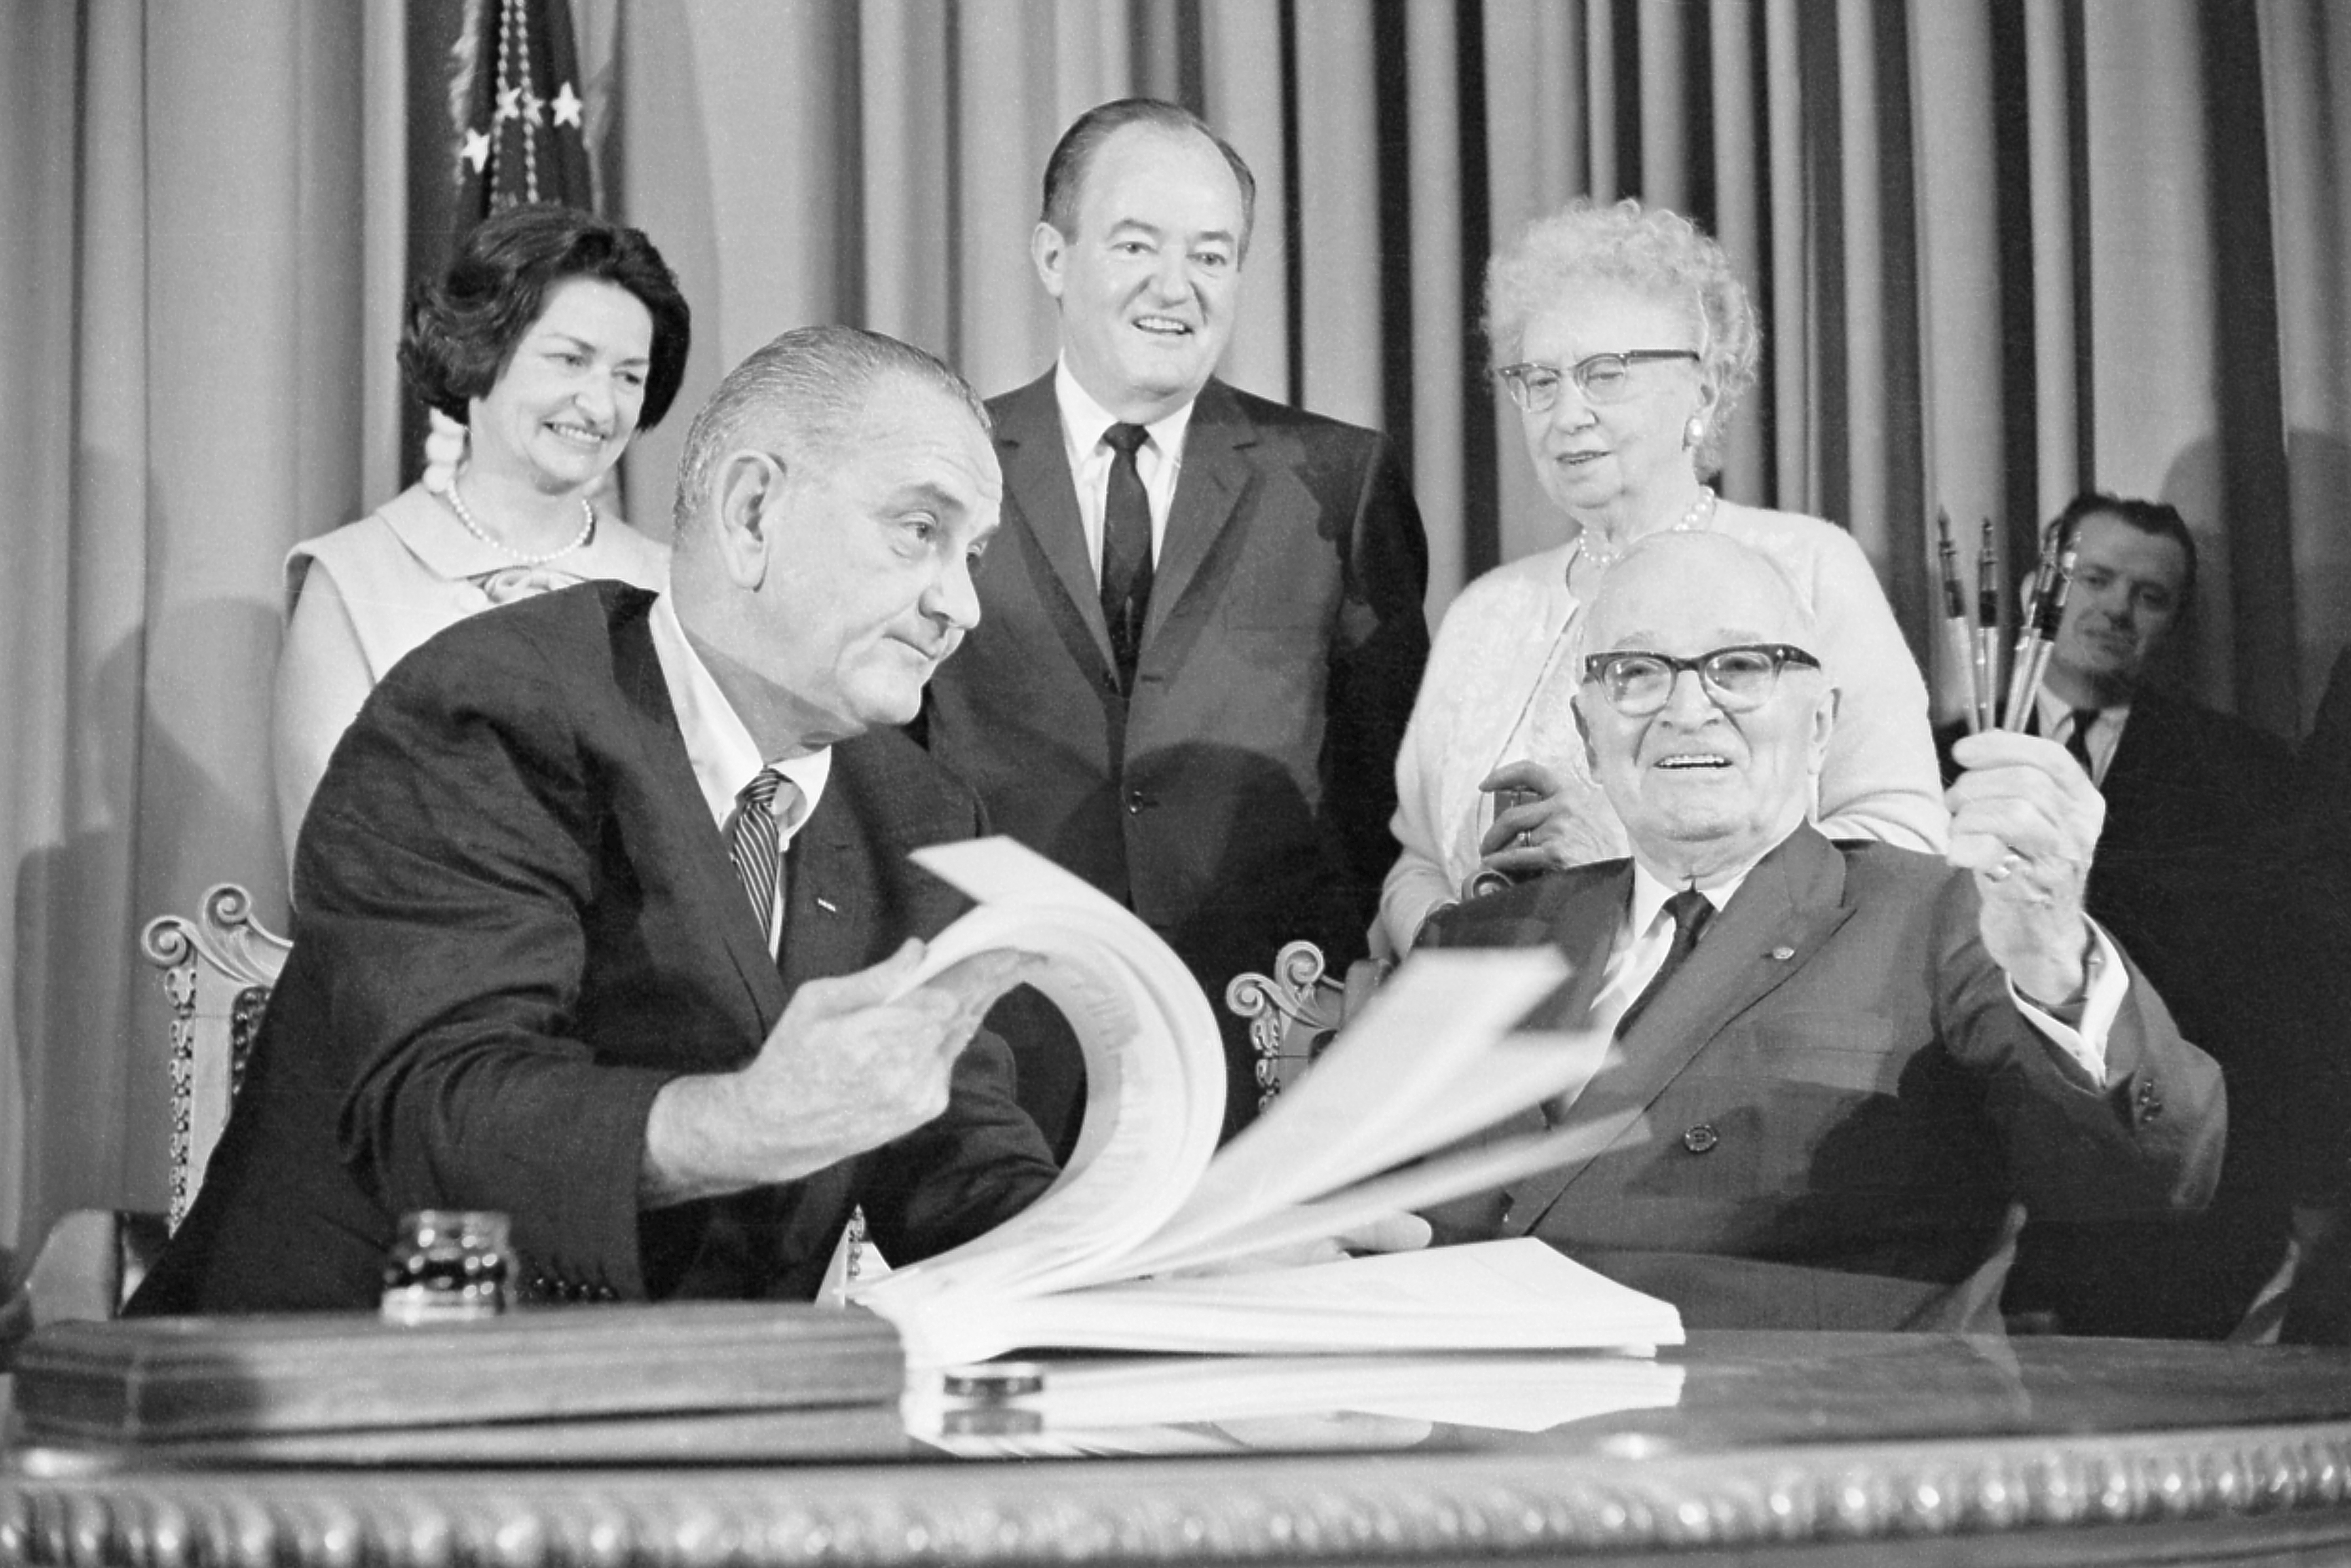 President Lyndon Johnson flips through the pages of the Medicare bill for former President Harry Truman in Independence, Missouri on July 30, 1965. Johnson flew to Independence to sign the bill in front of Truman, the man who originally proposed the legislation almost two decades before. Behind Johnson and Truman are Mrs. Johnson (left), Vice President Hubert Humphrey and Mrs. Truman. (Photo by Bettmann Collection via Getty Images)